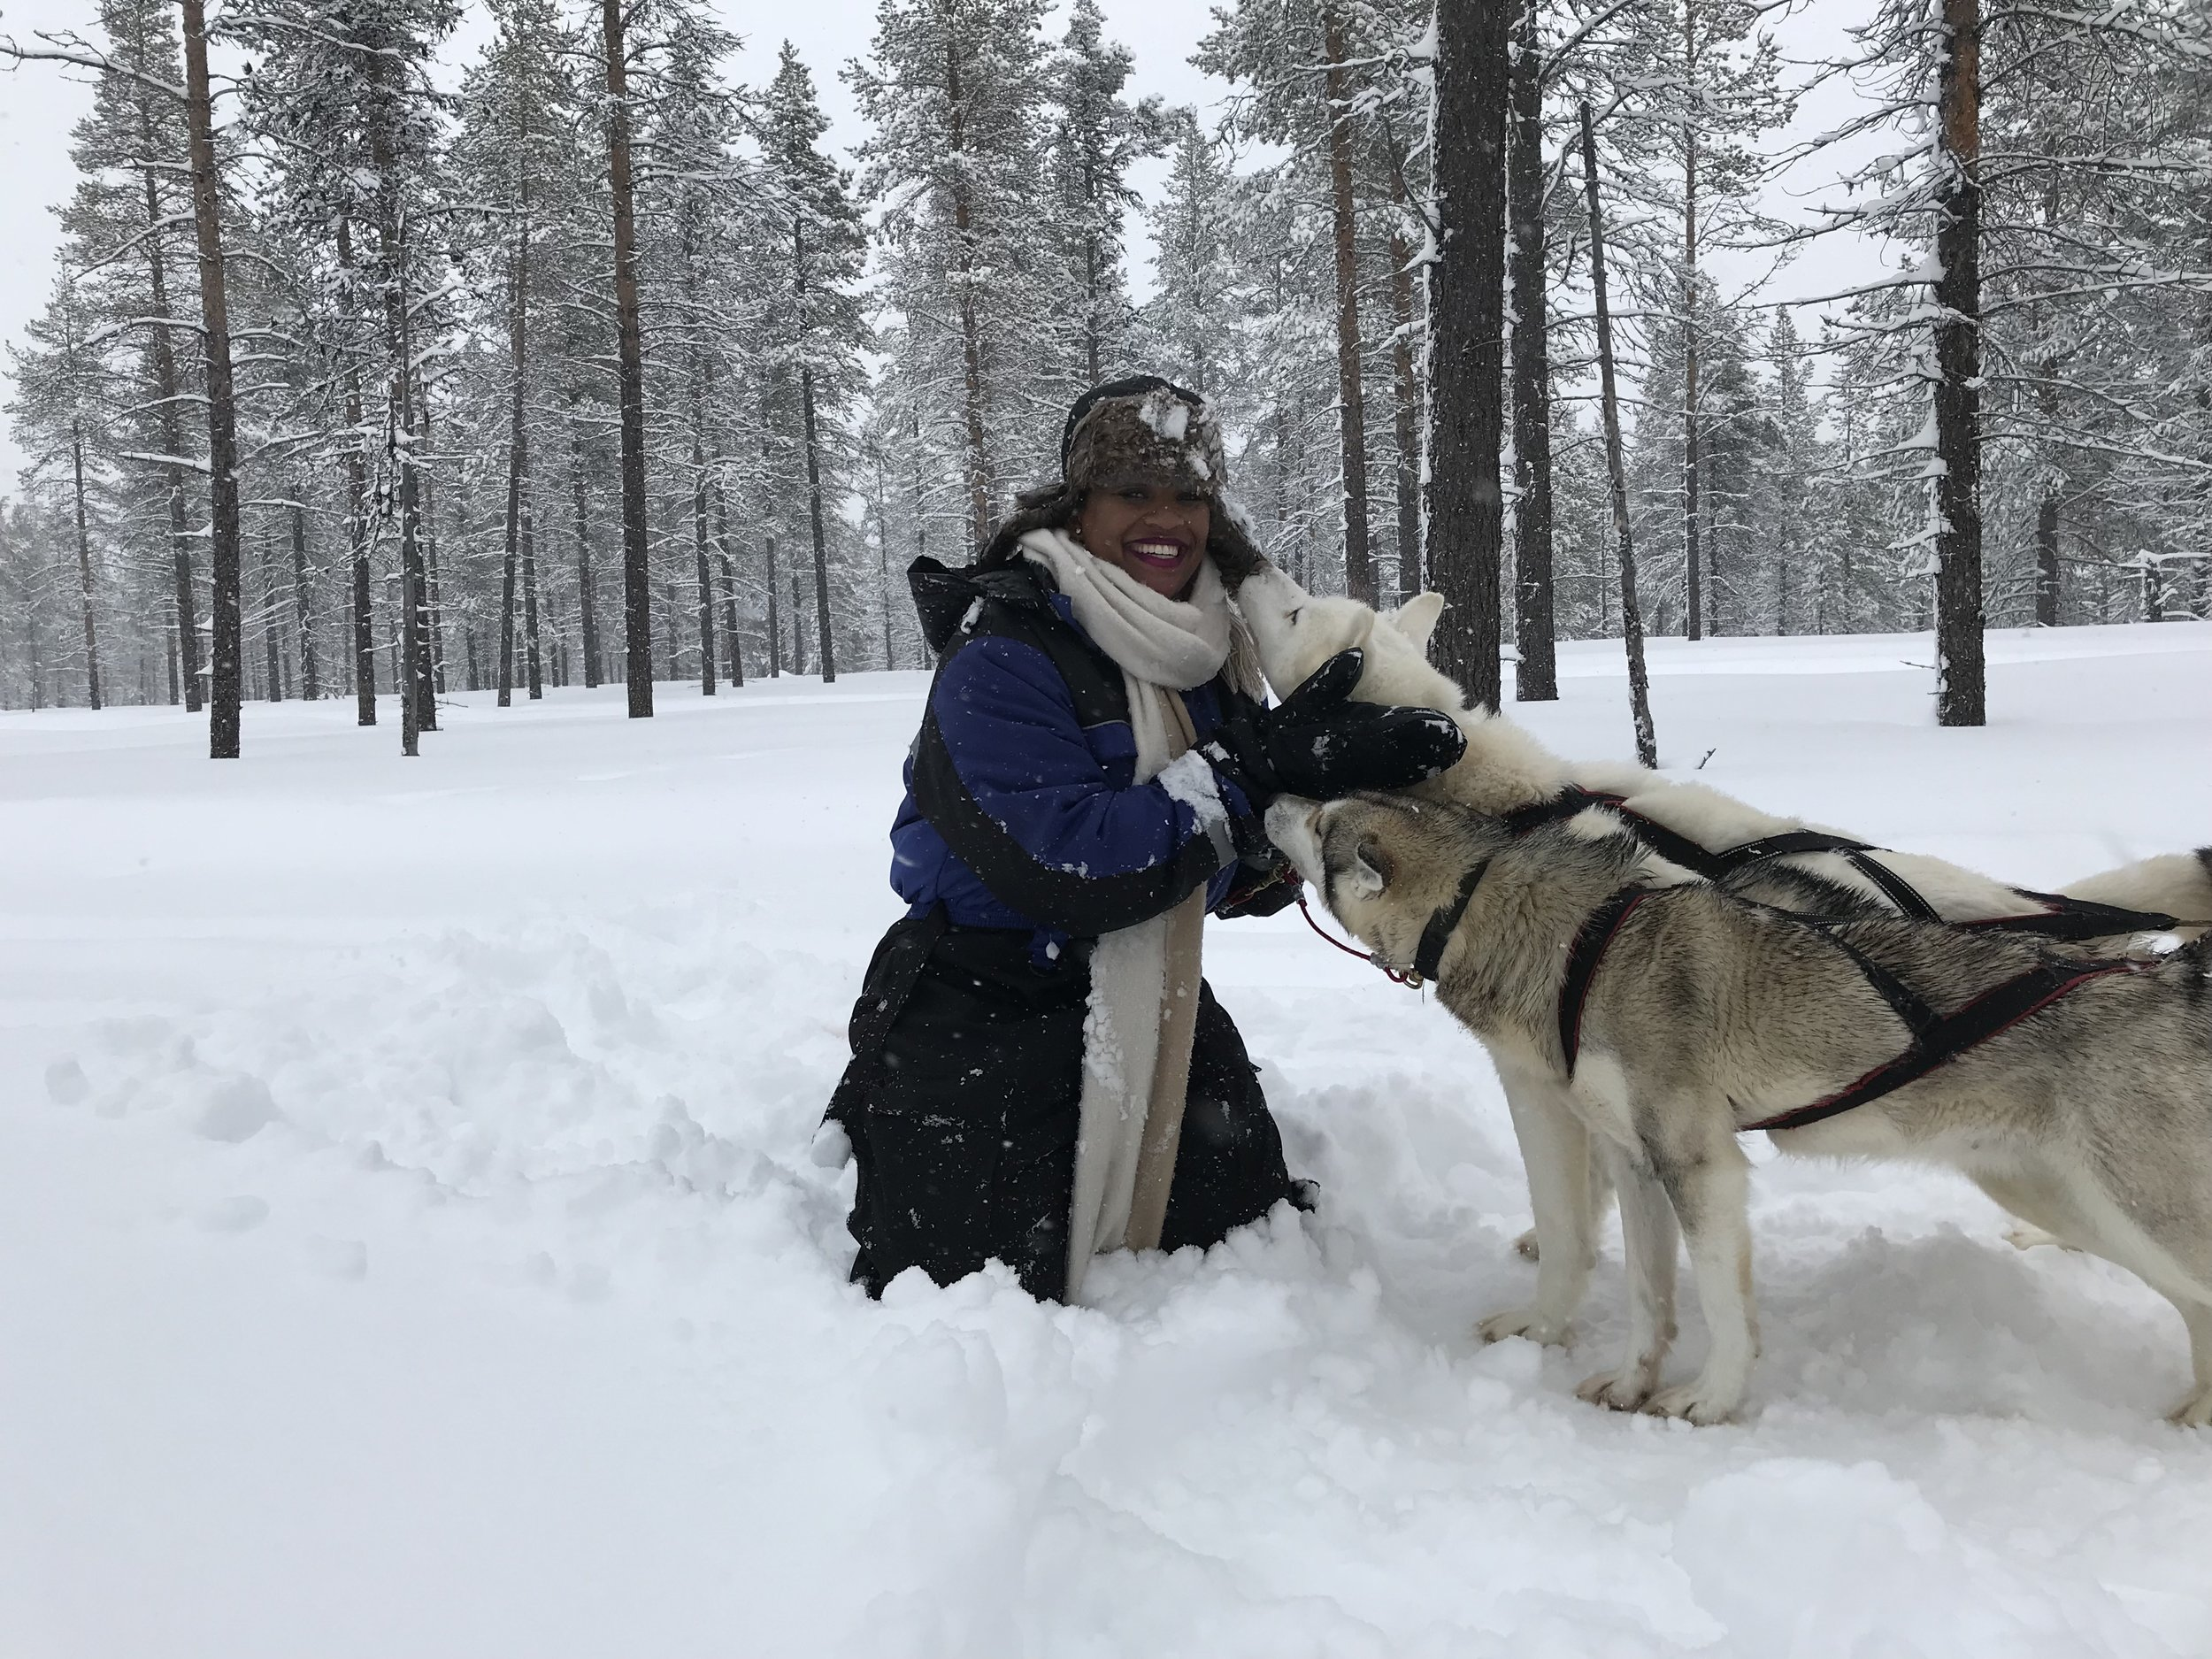 What to Do In The Arctic Circle of Finland - kakslaurrenanen Arctic Resort - Dog Sledding - RachelTravels.com